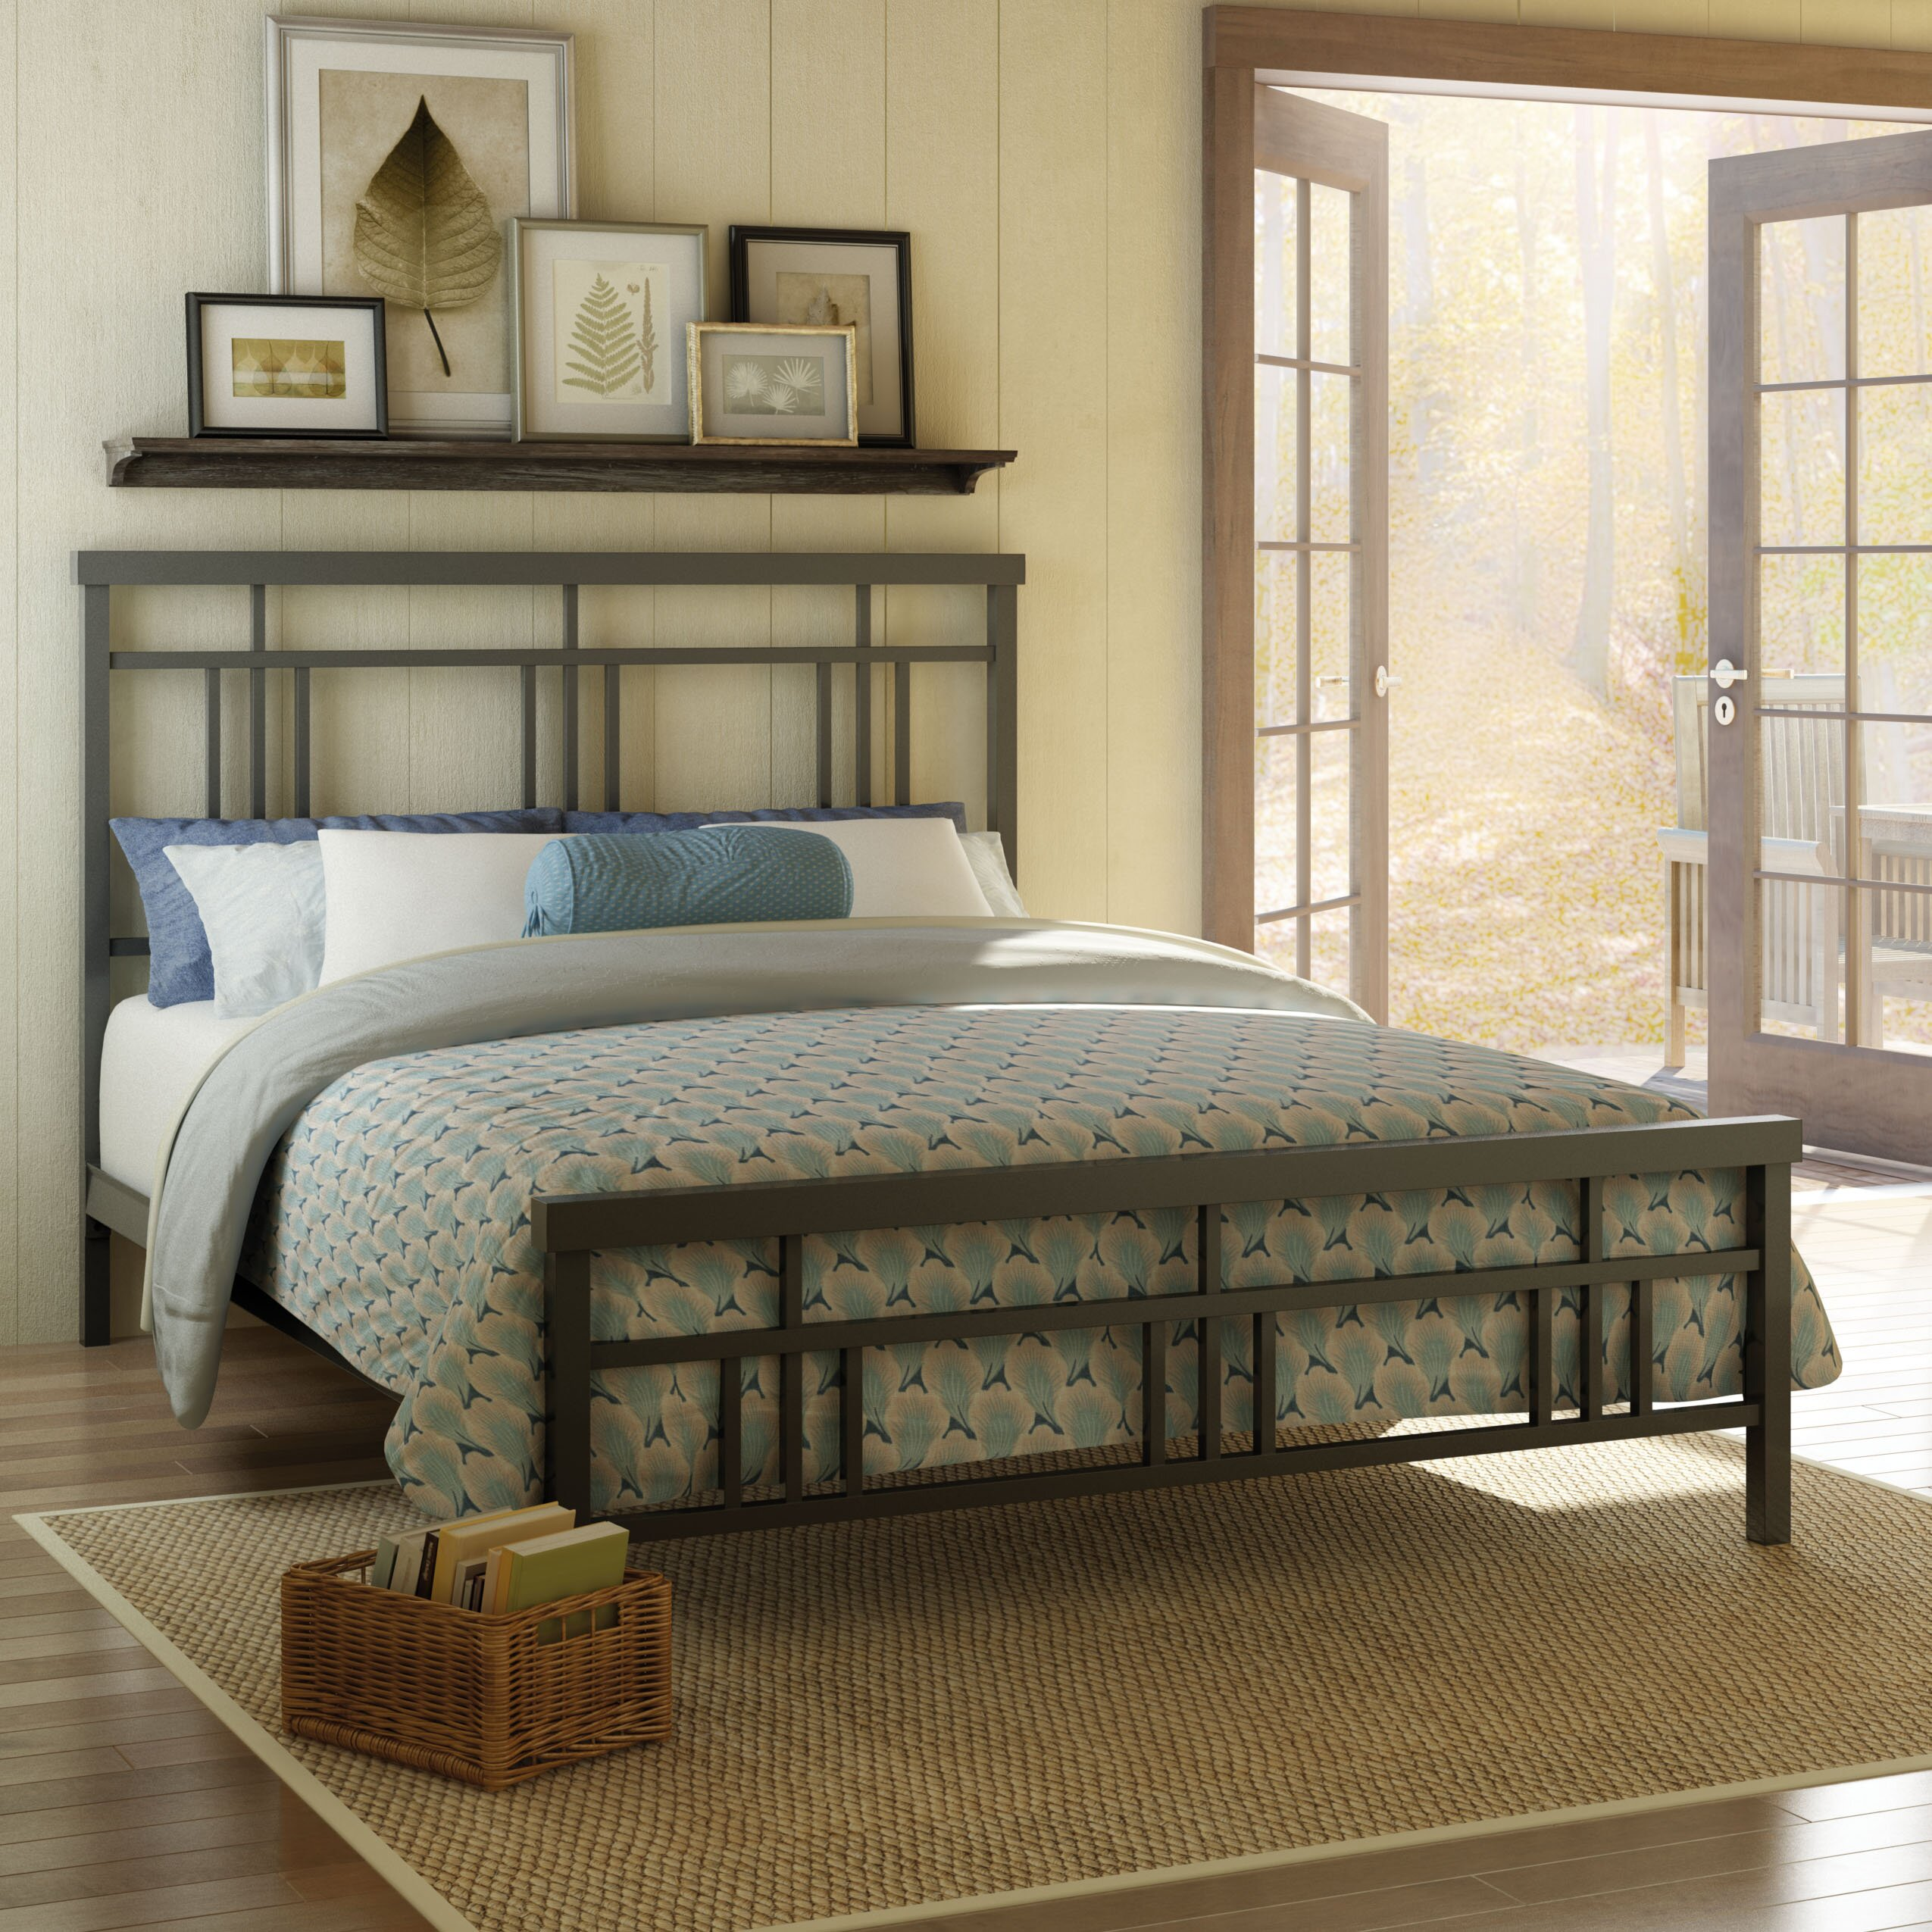 Amisco cottage metal headboard and footboard reviews for Queen size footboard